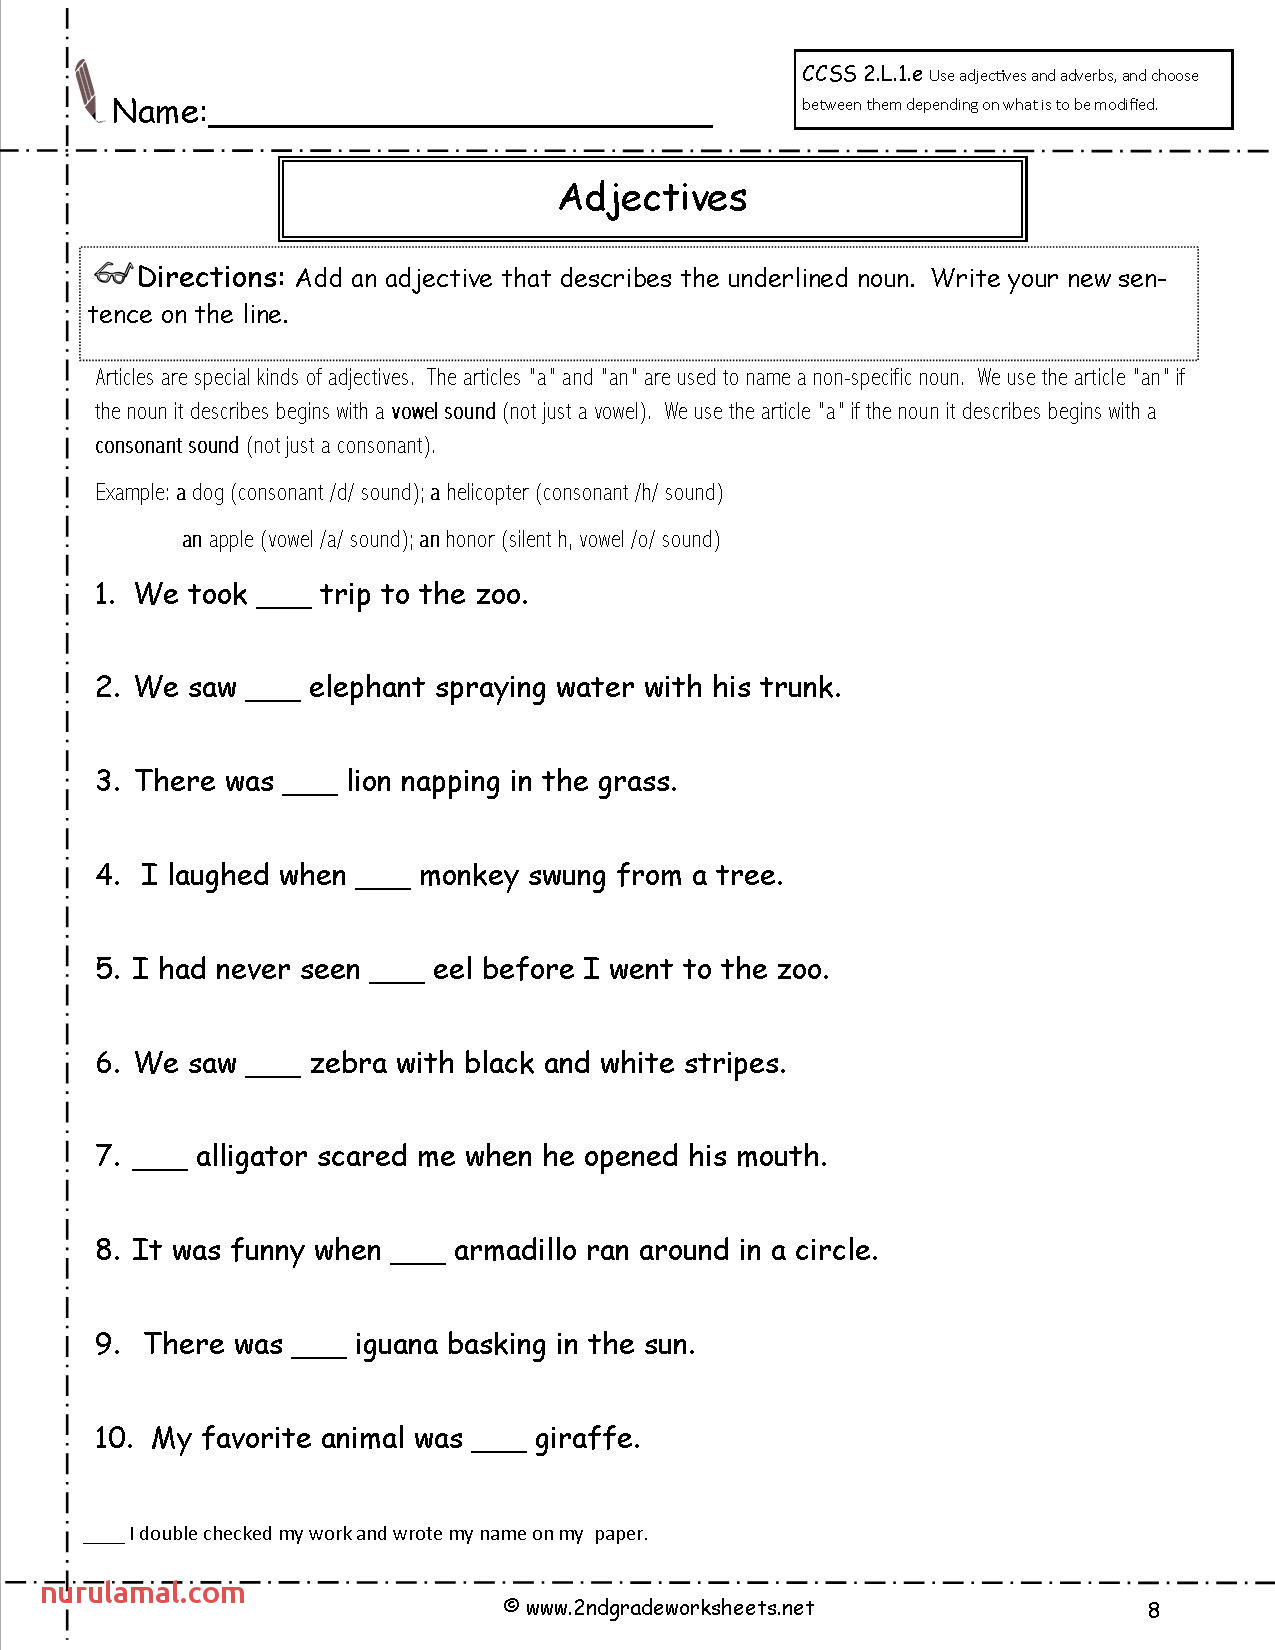 free languagegrammar worksheets and printouts english for grade extraordinary picture inspirations worksheet ideas